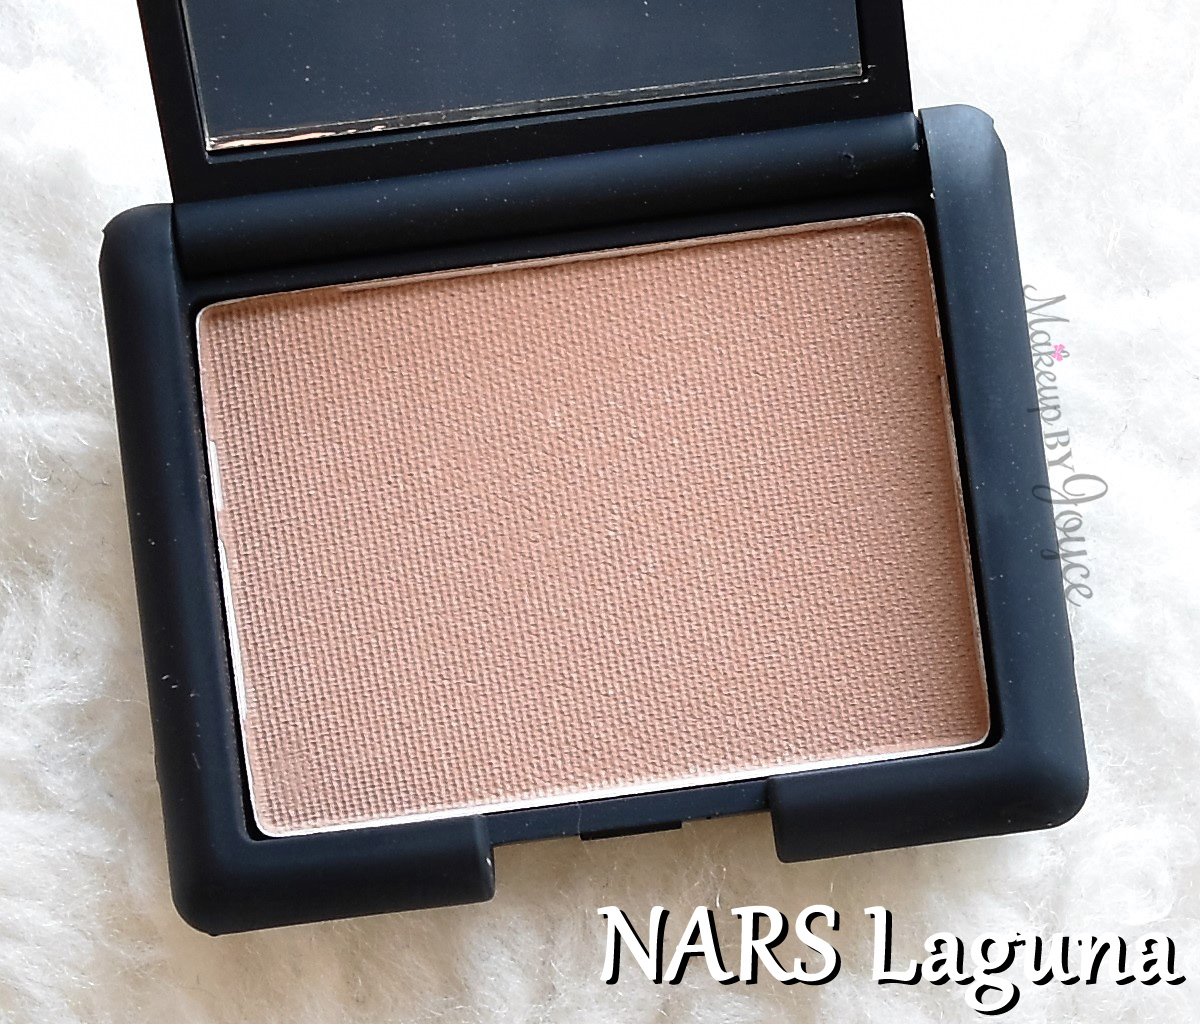 MakeupByJoyce ** !: Swatches + Review: NARS Laguna Tiare Bronzer, Mie Kabuki Brush + Goulue Blush